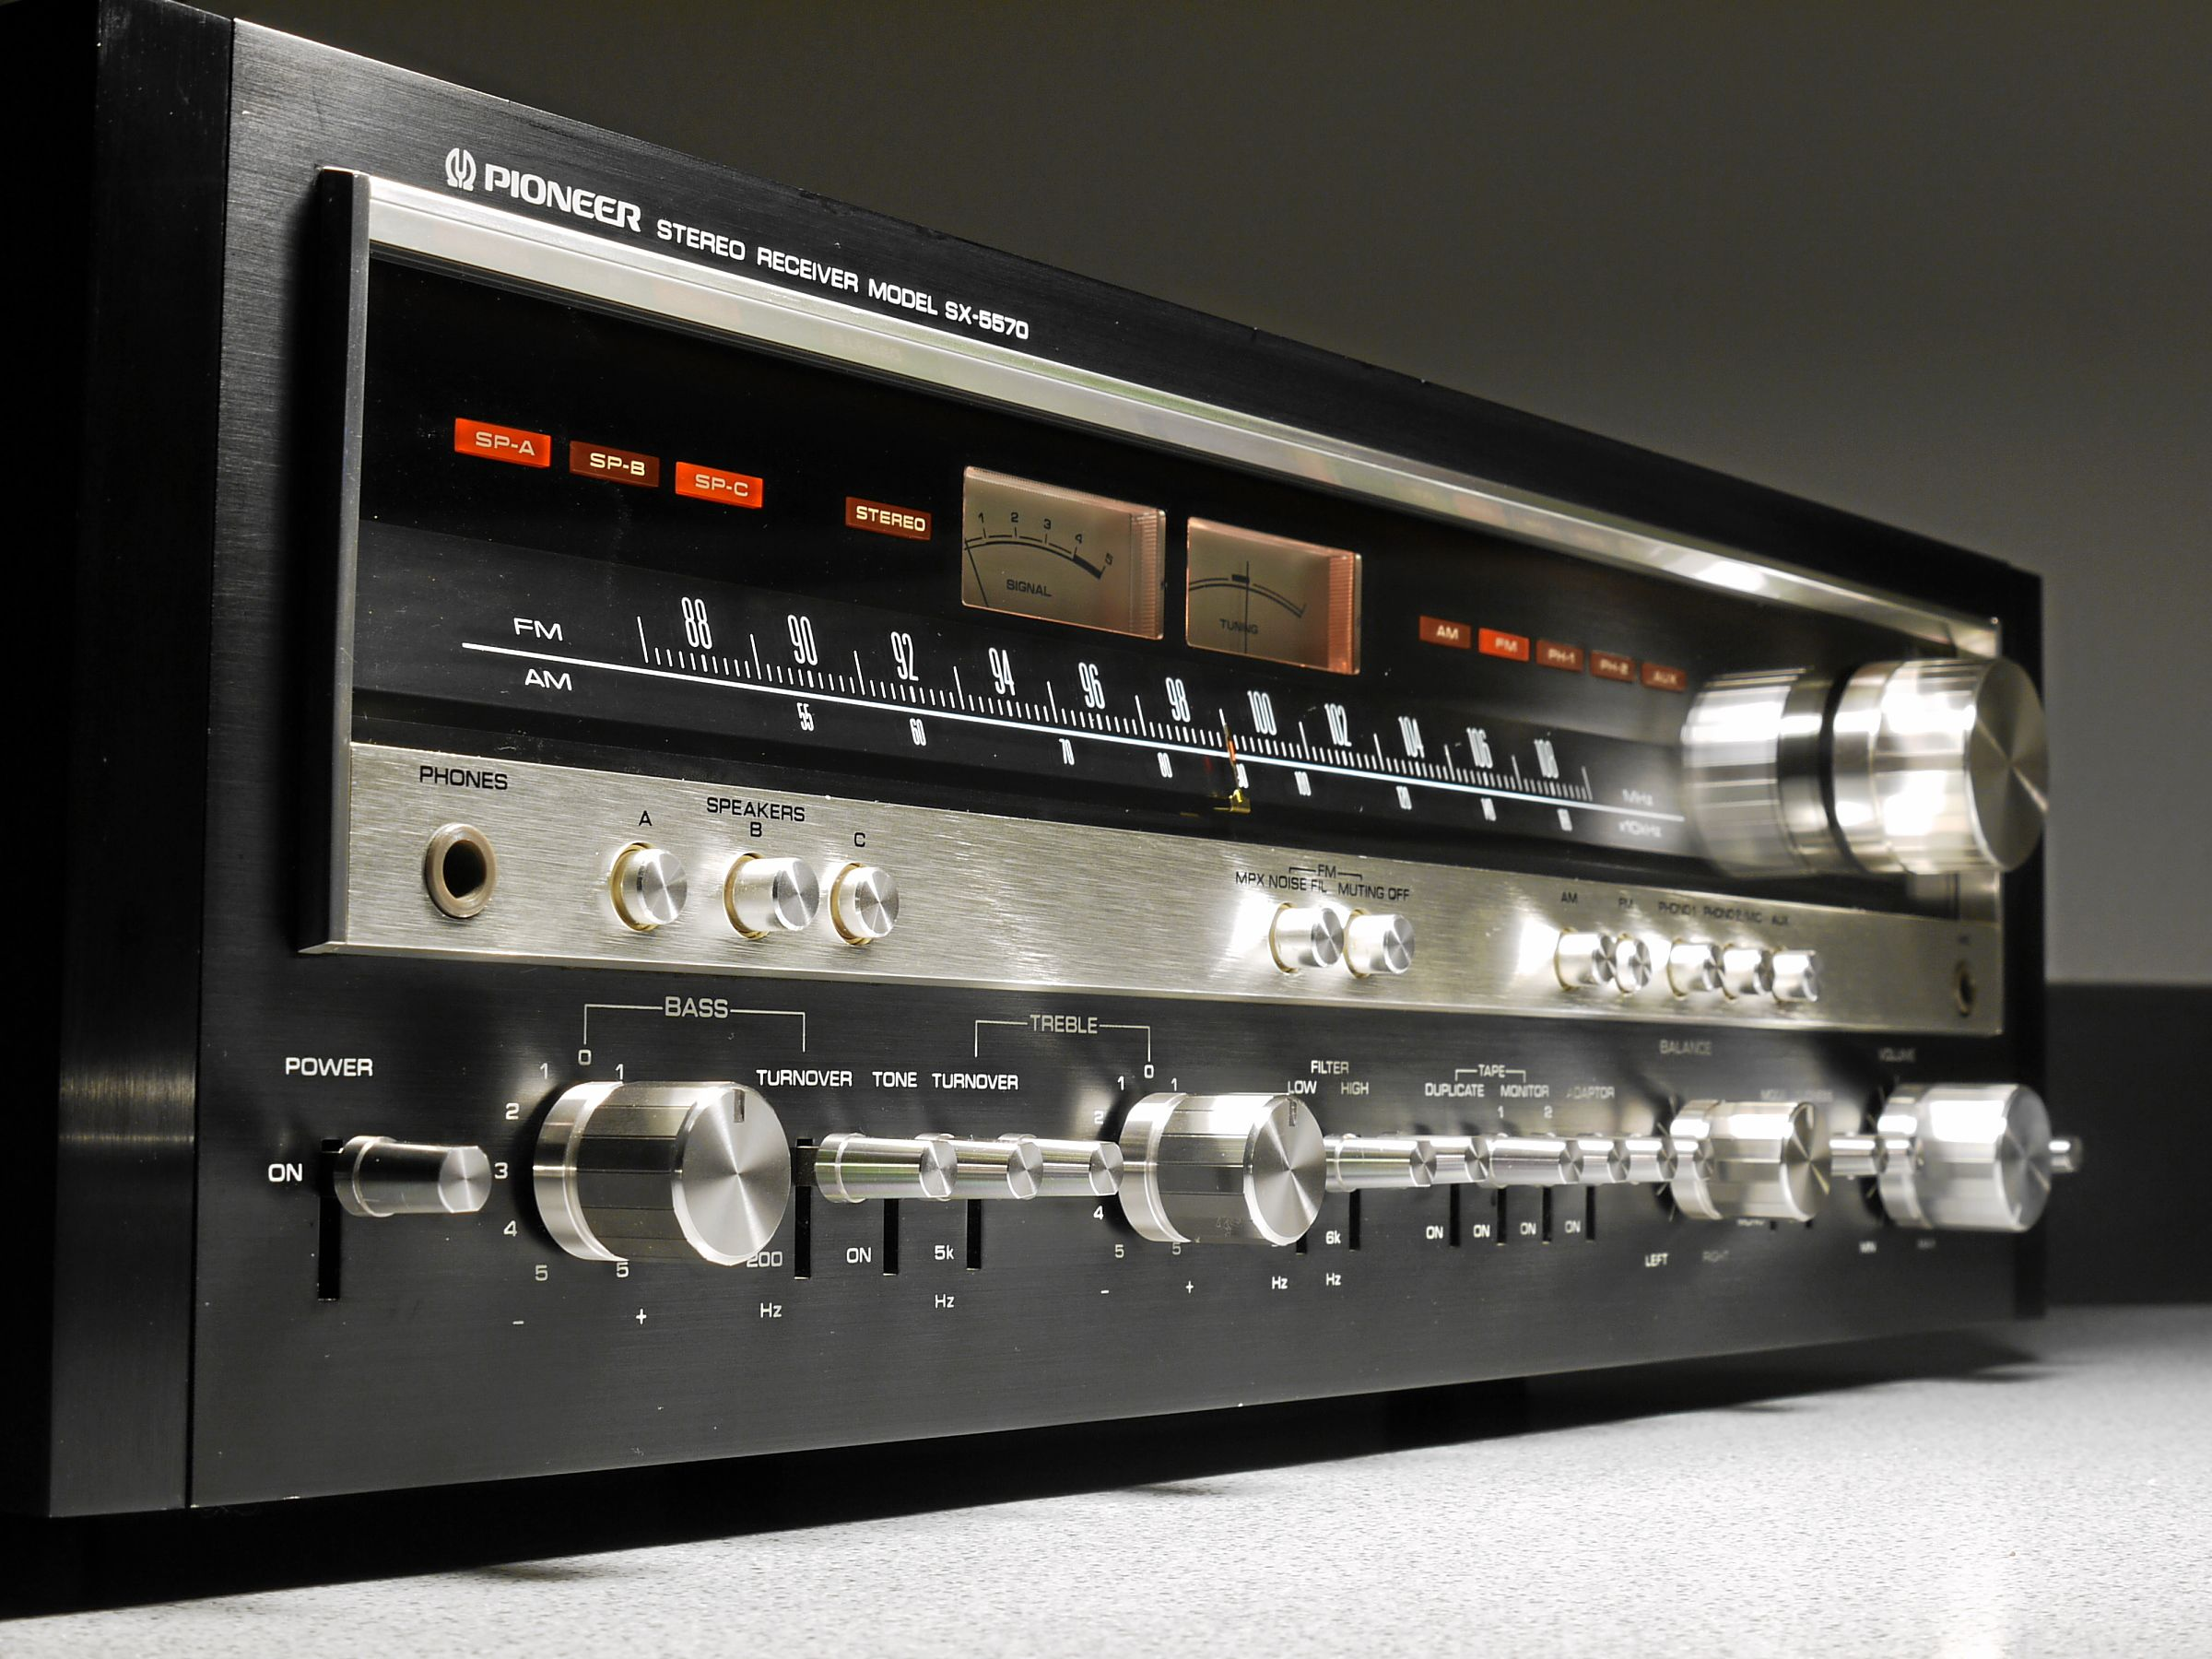 All Sizes Pioneer Sx 5570 Stereo Receiver Flickr Photo Sharing Noise Filter For System